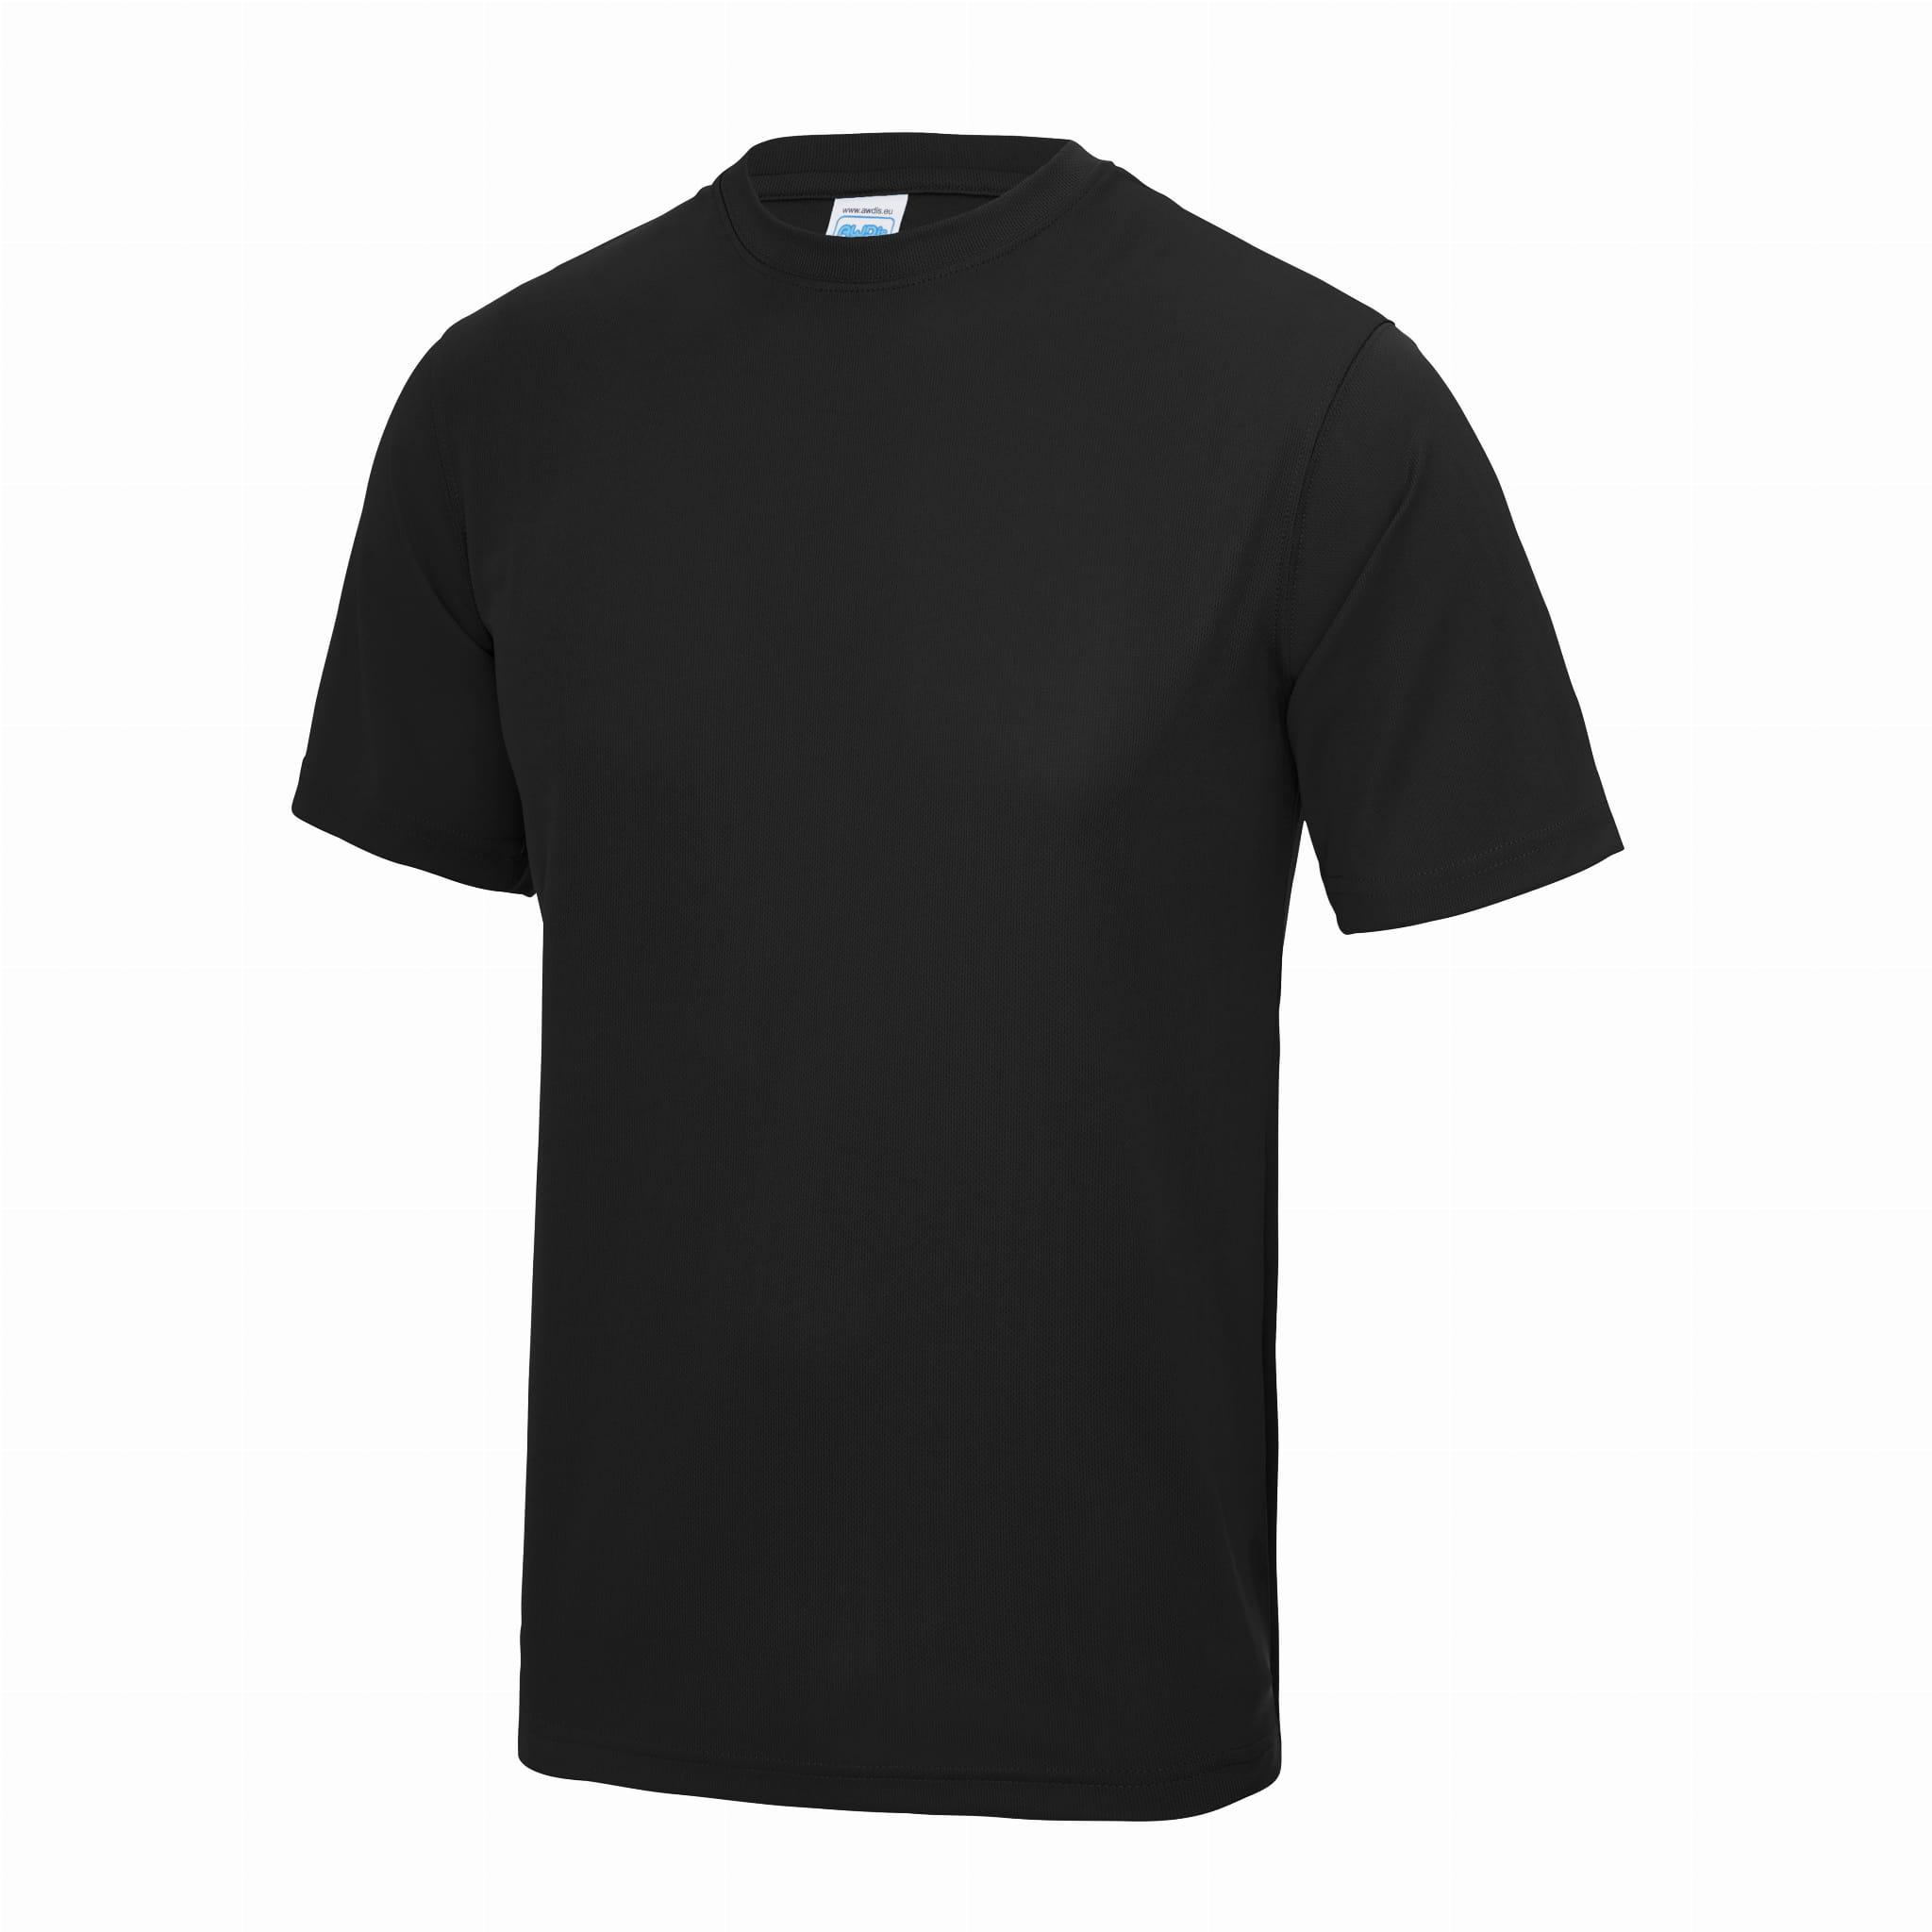 Large Black Unisex Sports T Shirt - choose logo